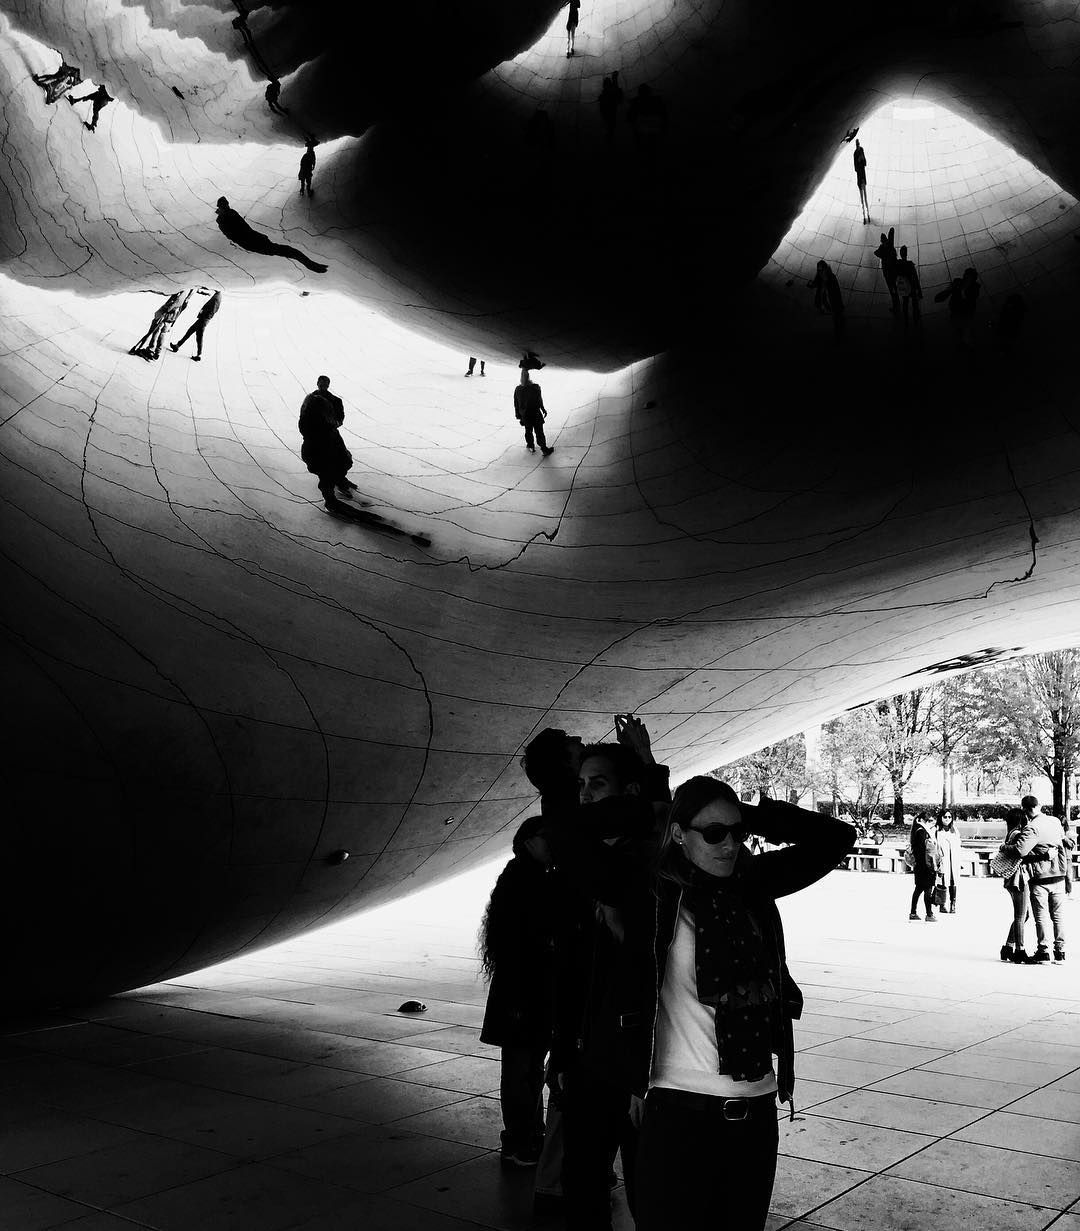 Bean sculpture, Chicago, shot on a Ricoh GR2 by Jay Sennett